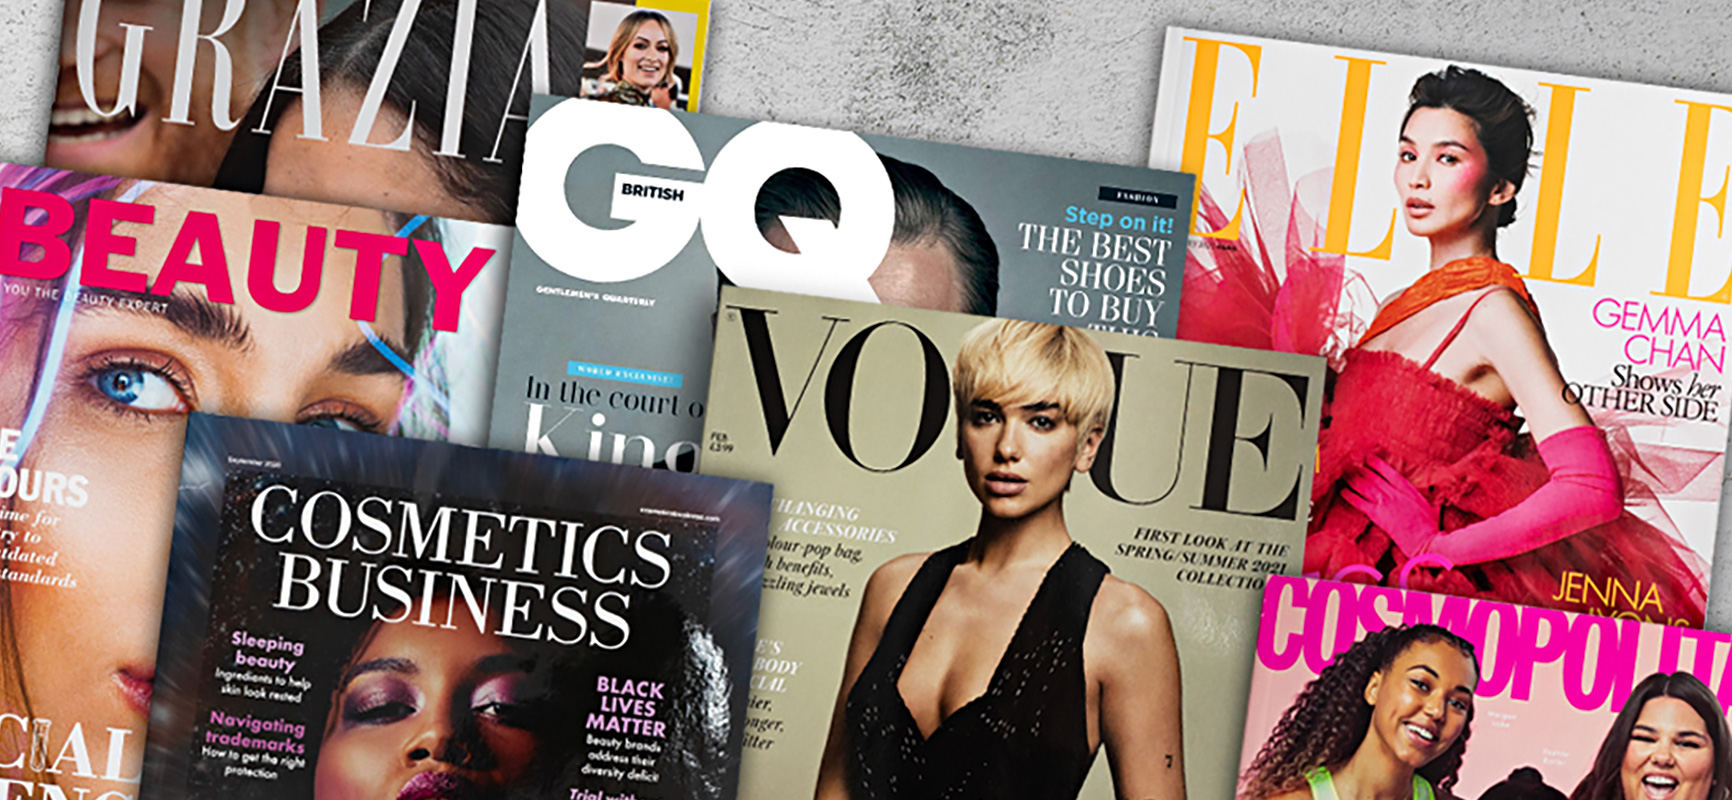 Selection of magazines highlighting the latest market trends